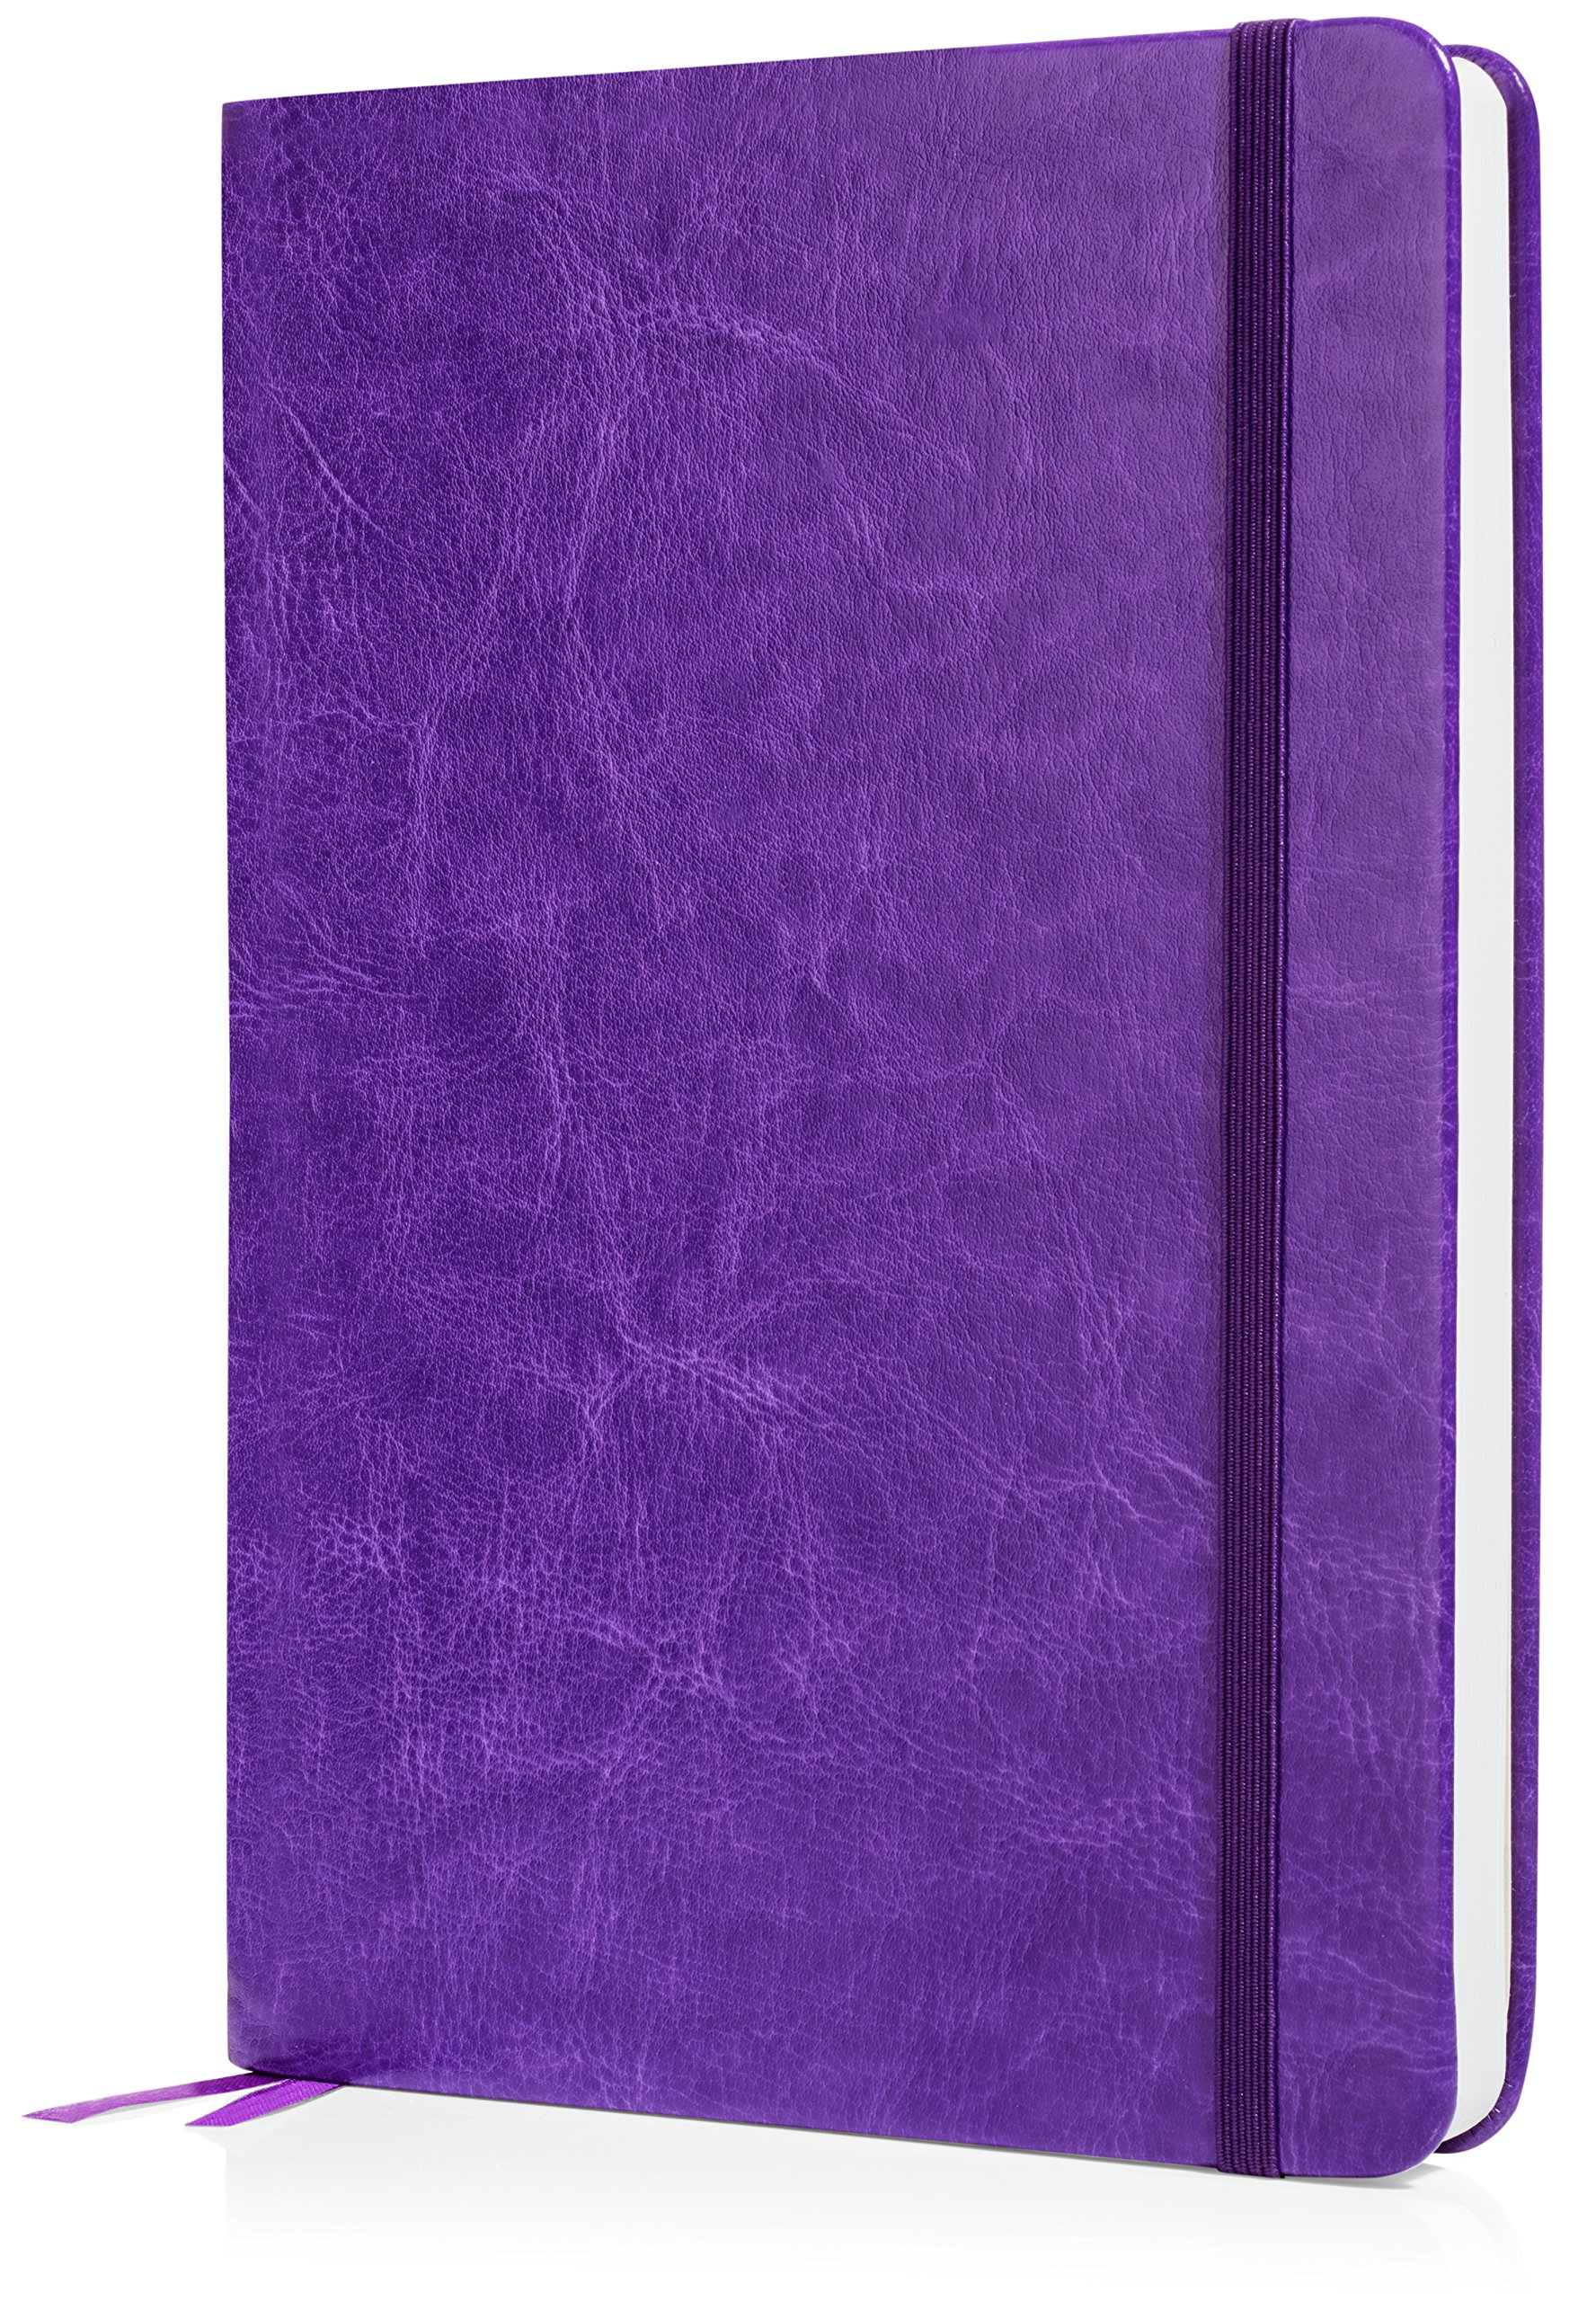 Scrivwell Dotted A5 Hardcover Notebook - 240 Dotted Pages with Elastic Band, Two Ribbon Page Markers, 100 GSM Paper, Pocket Folder - Great for Bullet journaling (Purple) by Scrivwell (Image #2)